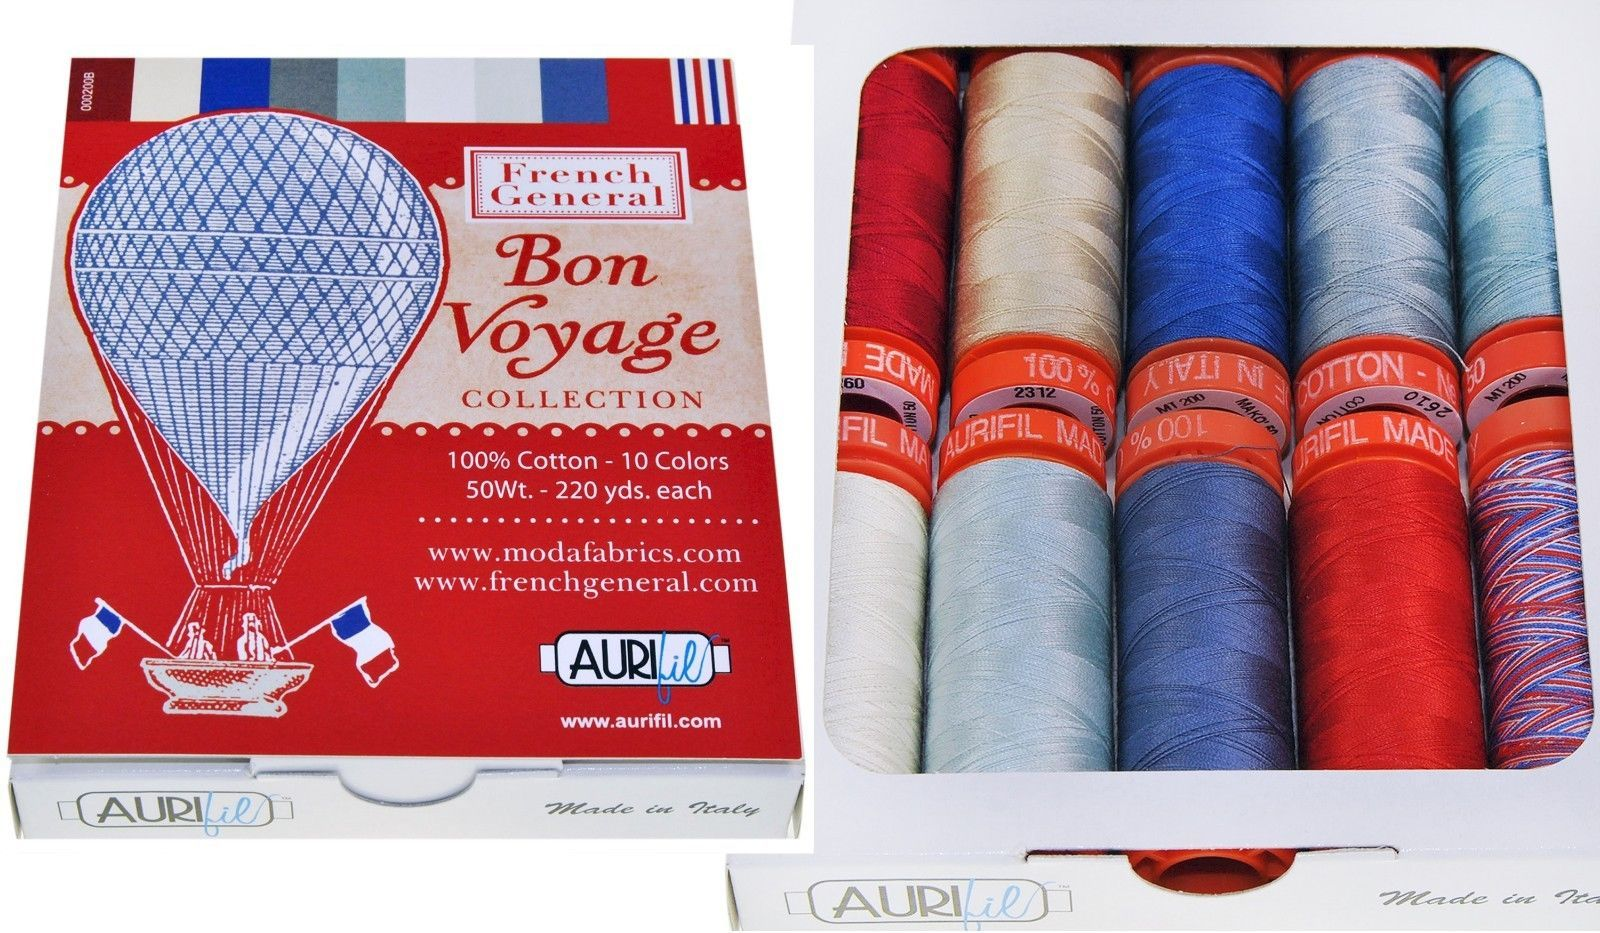 Sewing Thread 28172: Aurifil Thread 50 Wt Cotton 10 Spools - Bon Voyage By French General -> BUY IT NOW ONLY: $36.99 on eBay!